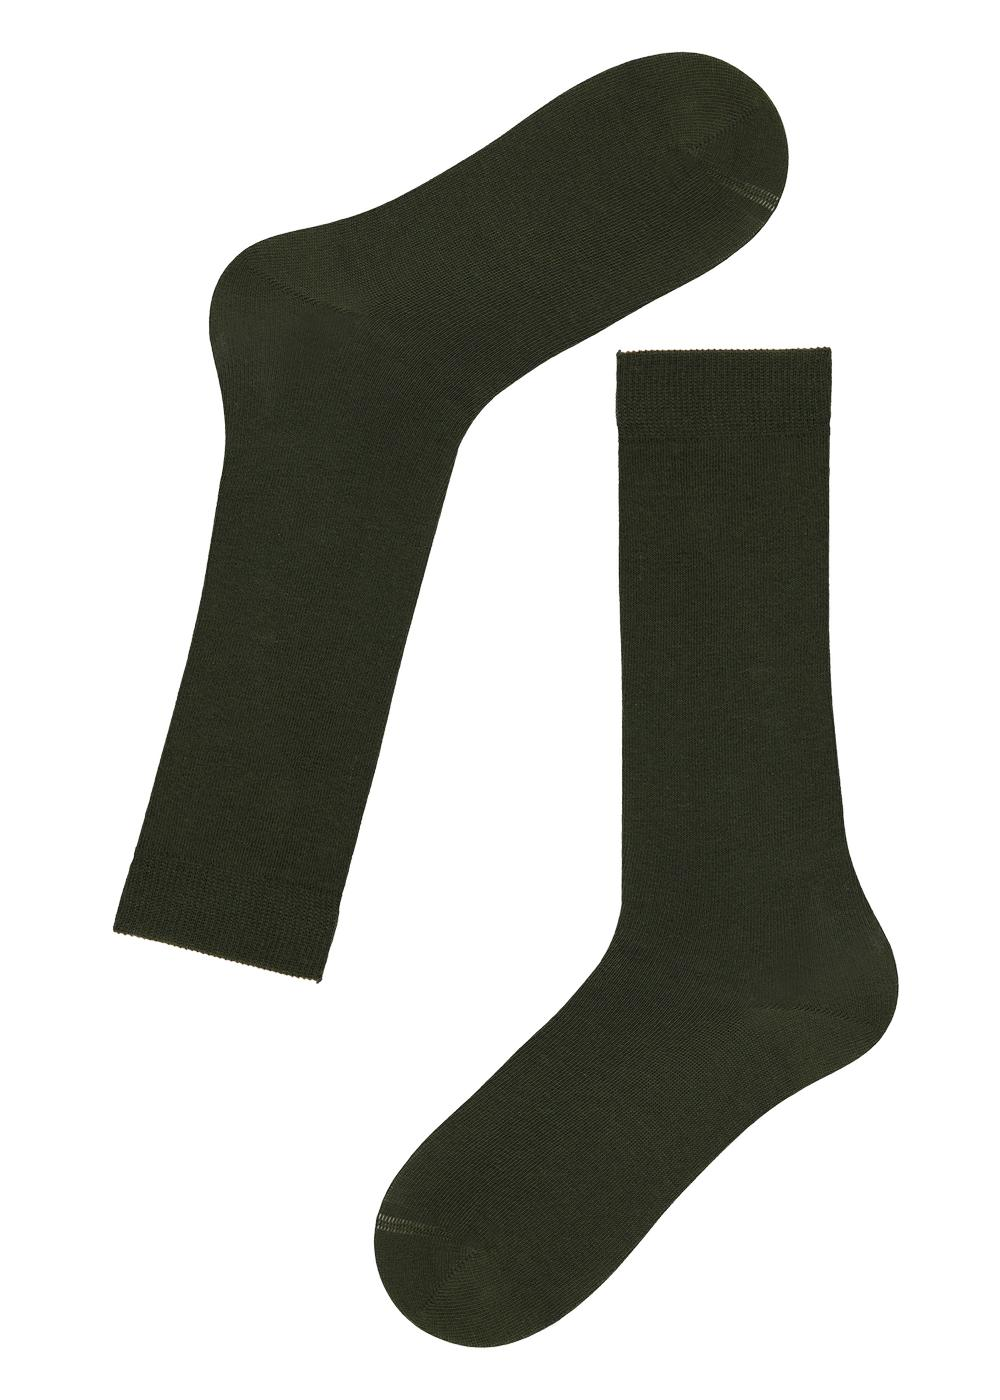 Children's Long Cotton Socks with Fresh Feet Breathable Material